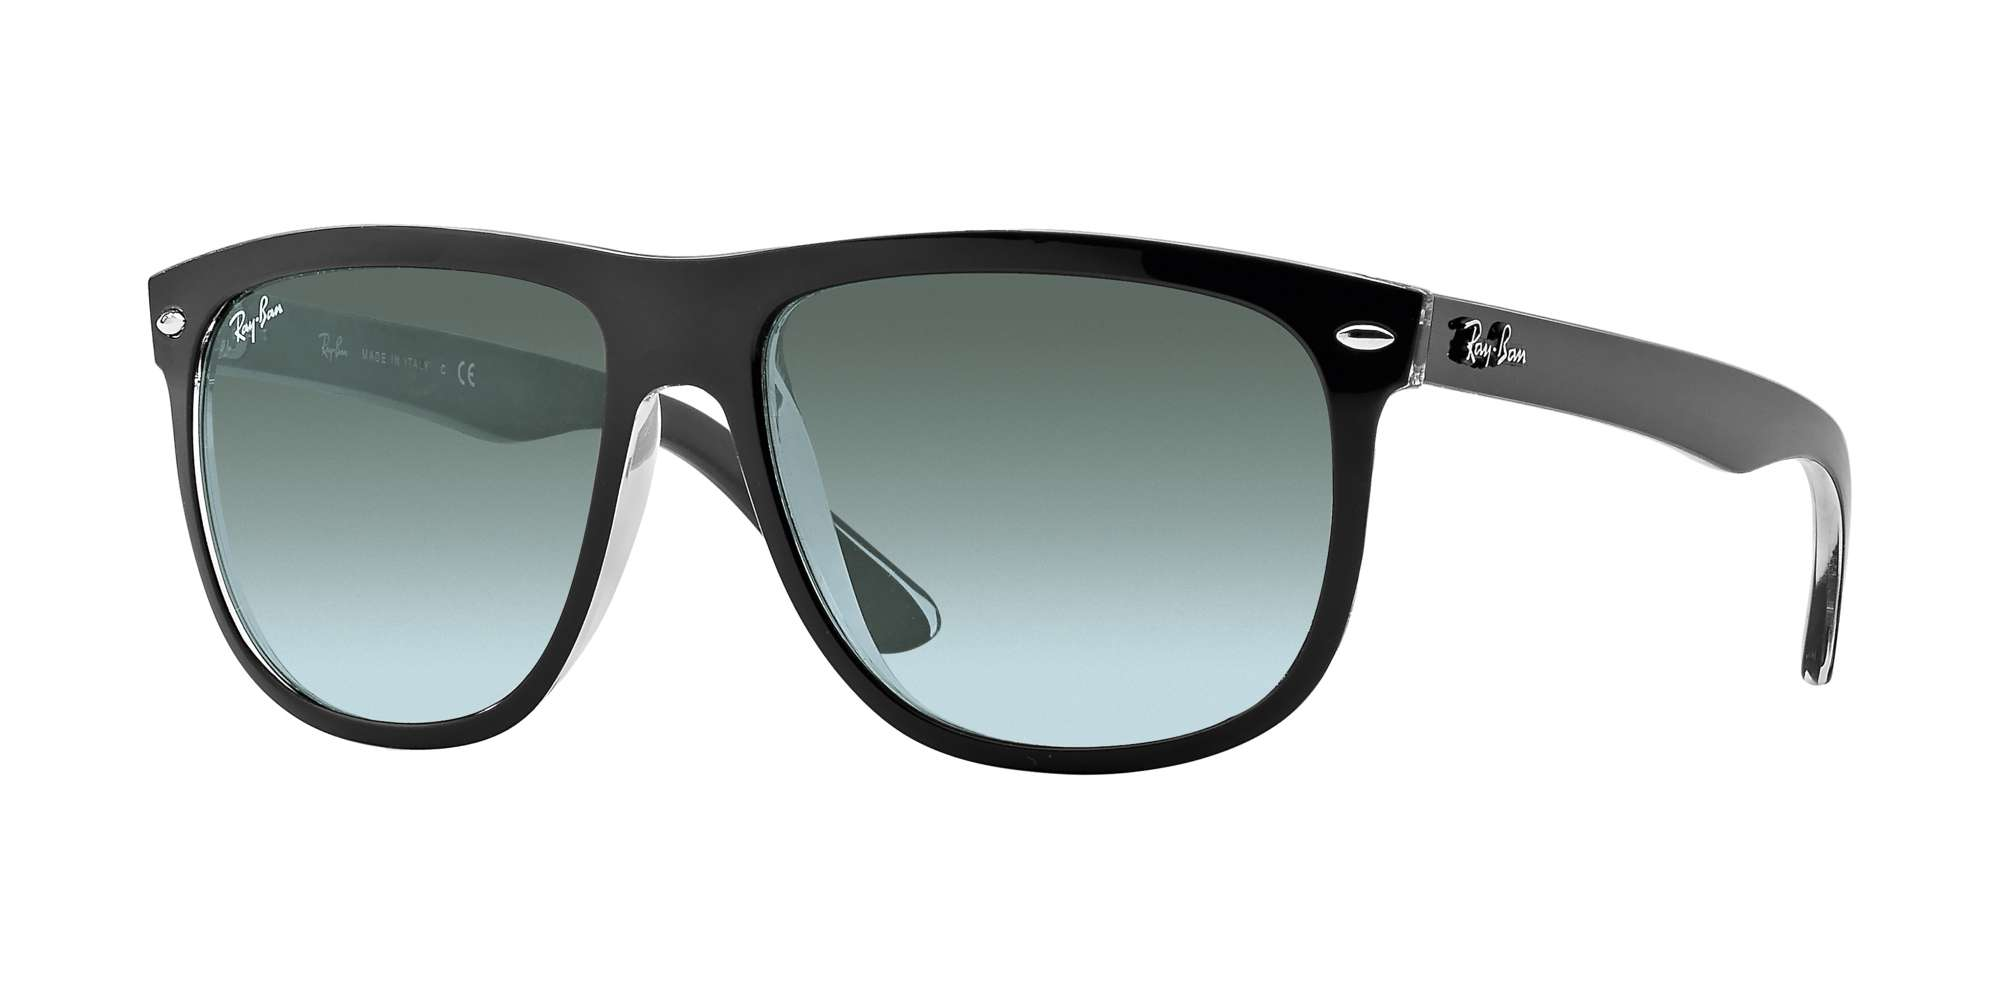 TOP BLACK ON TRANSPARENT / GREY GRADIENT DARK GREY lenses